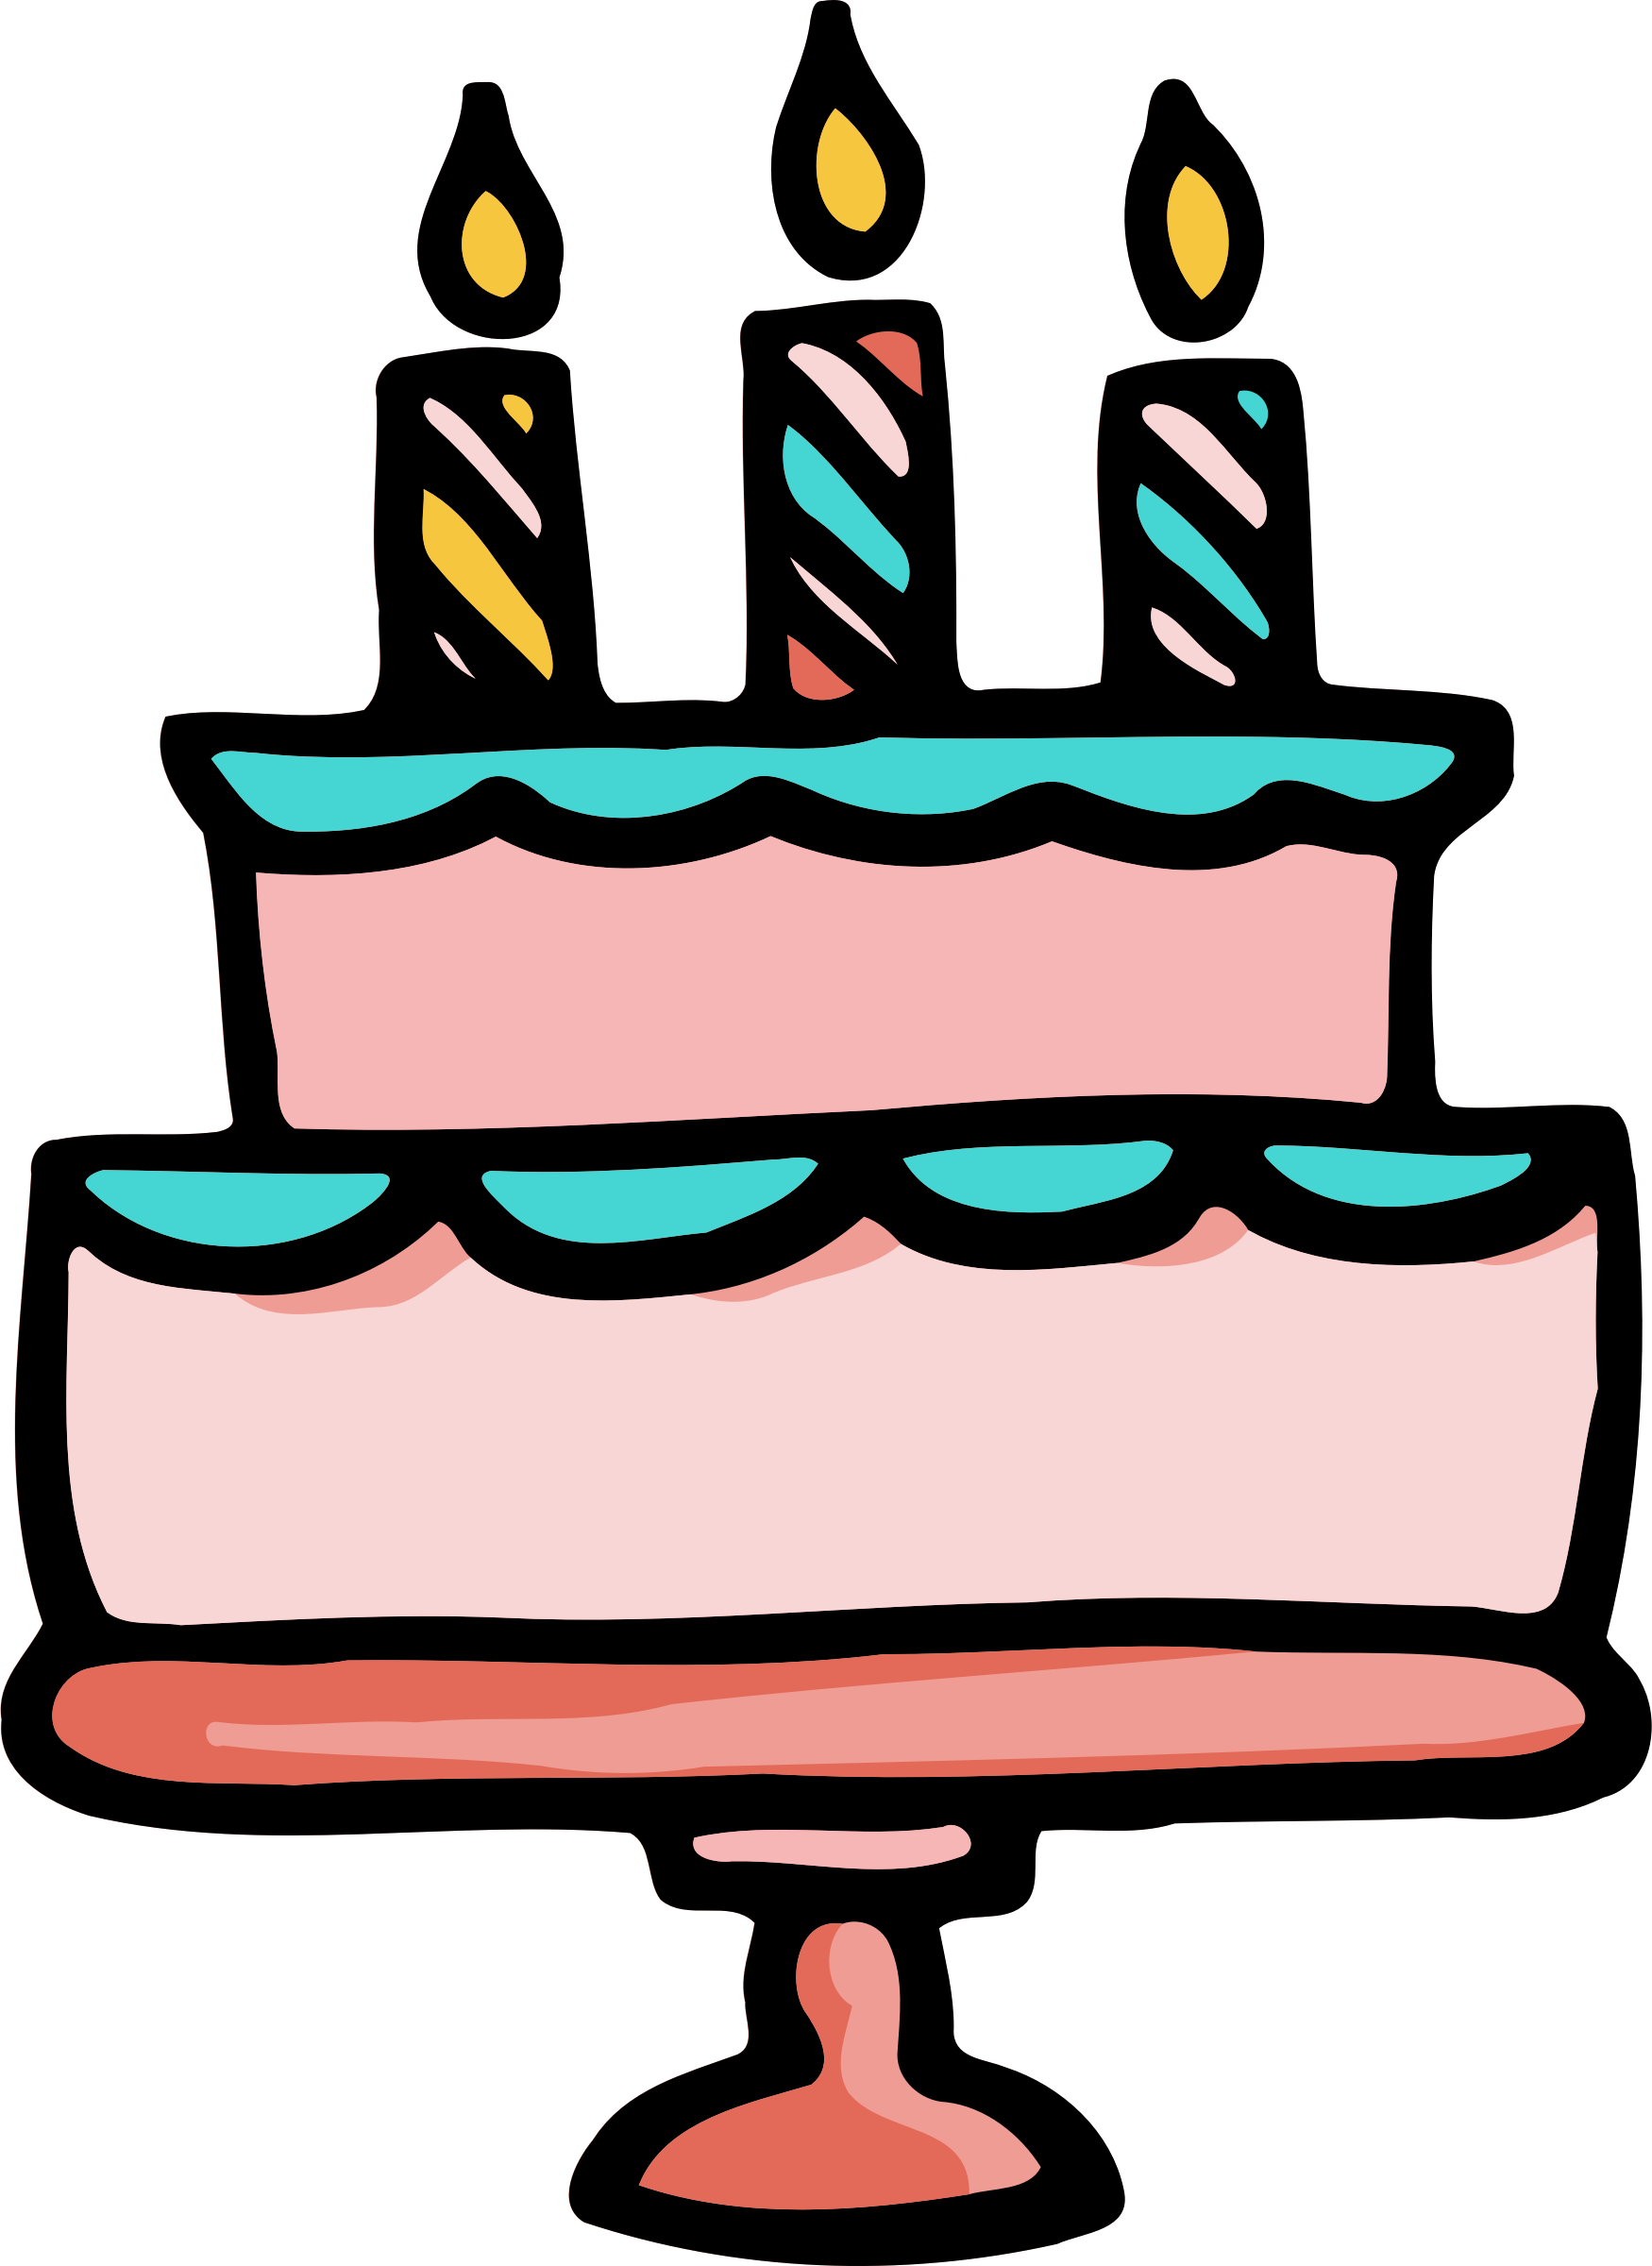 Clipart of birthday cake image black and white Clipart - Birthday cake 3 image black and white